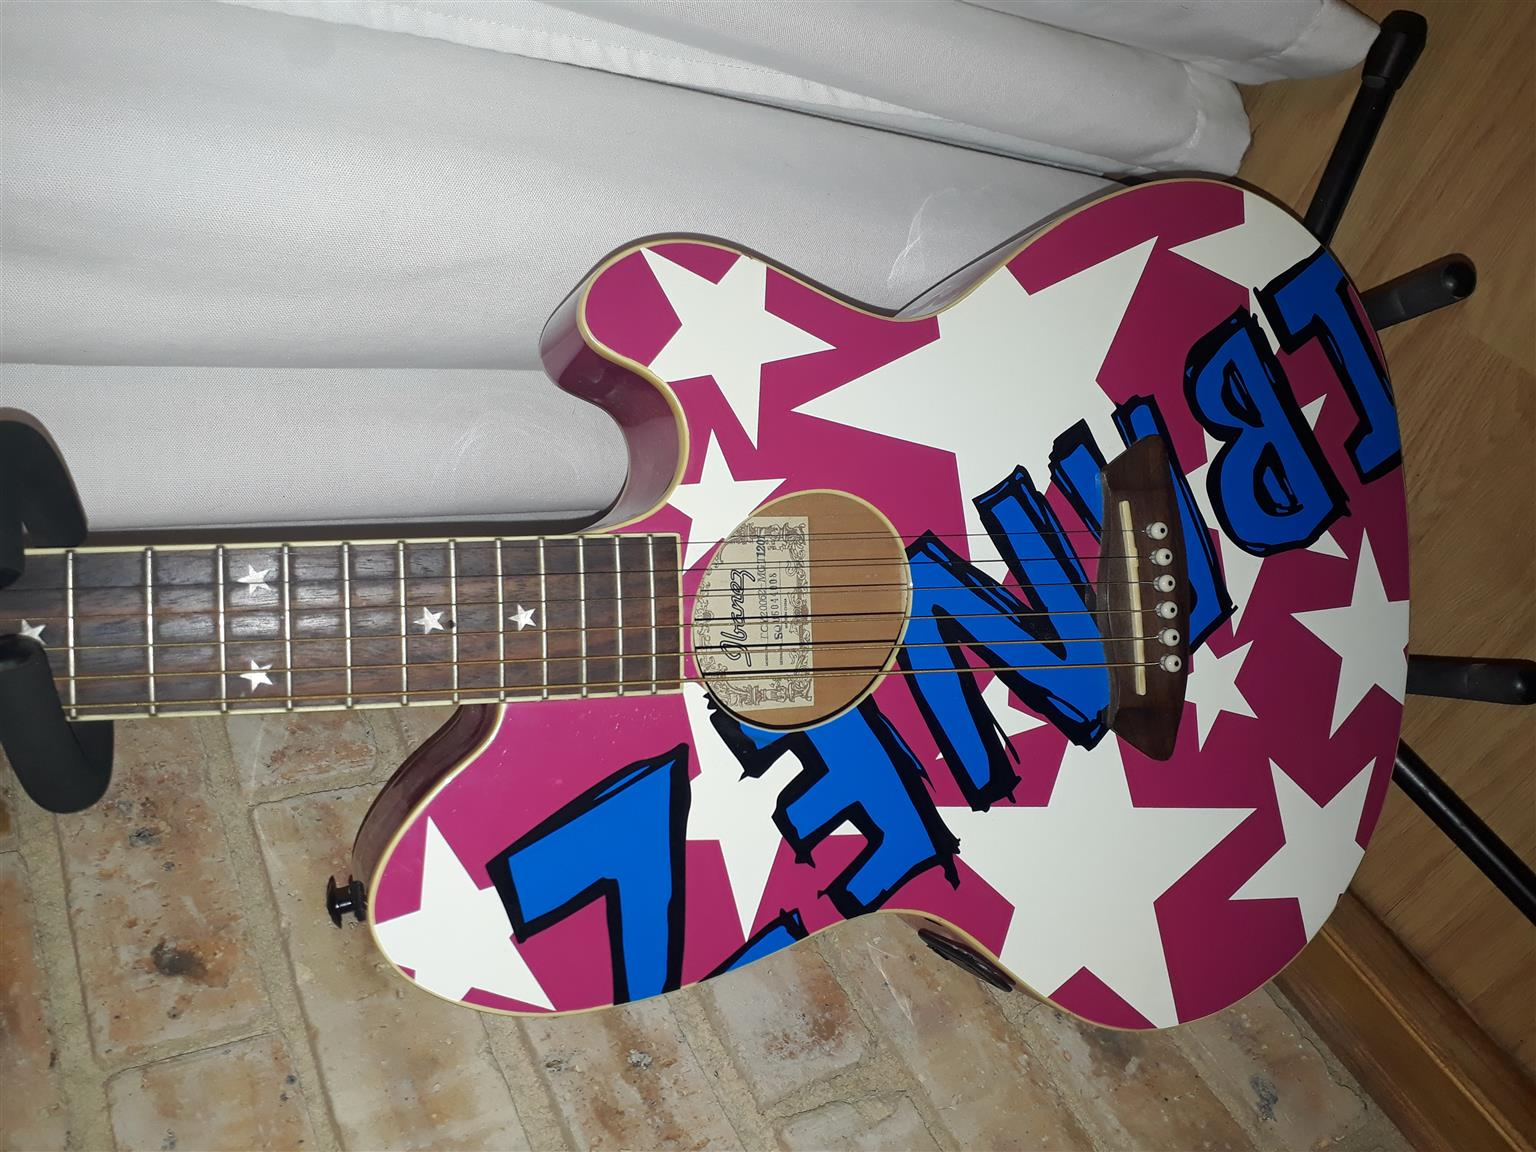 Ibanez Talman TCY20062 Pink/Blue Acoustic/Electric Guitar with built in pick up + Guitar Bag